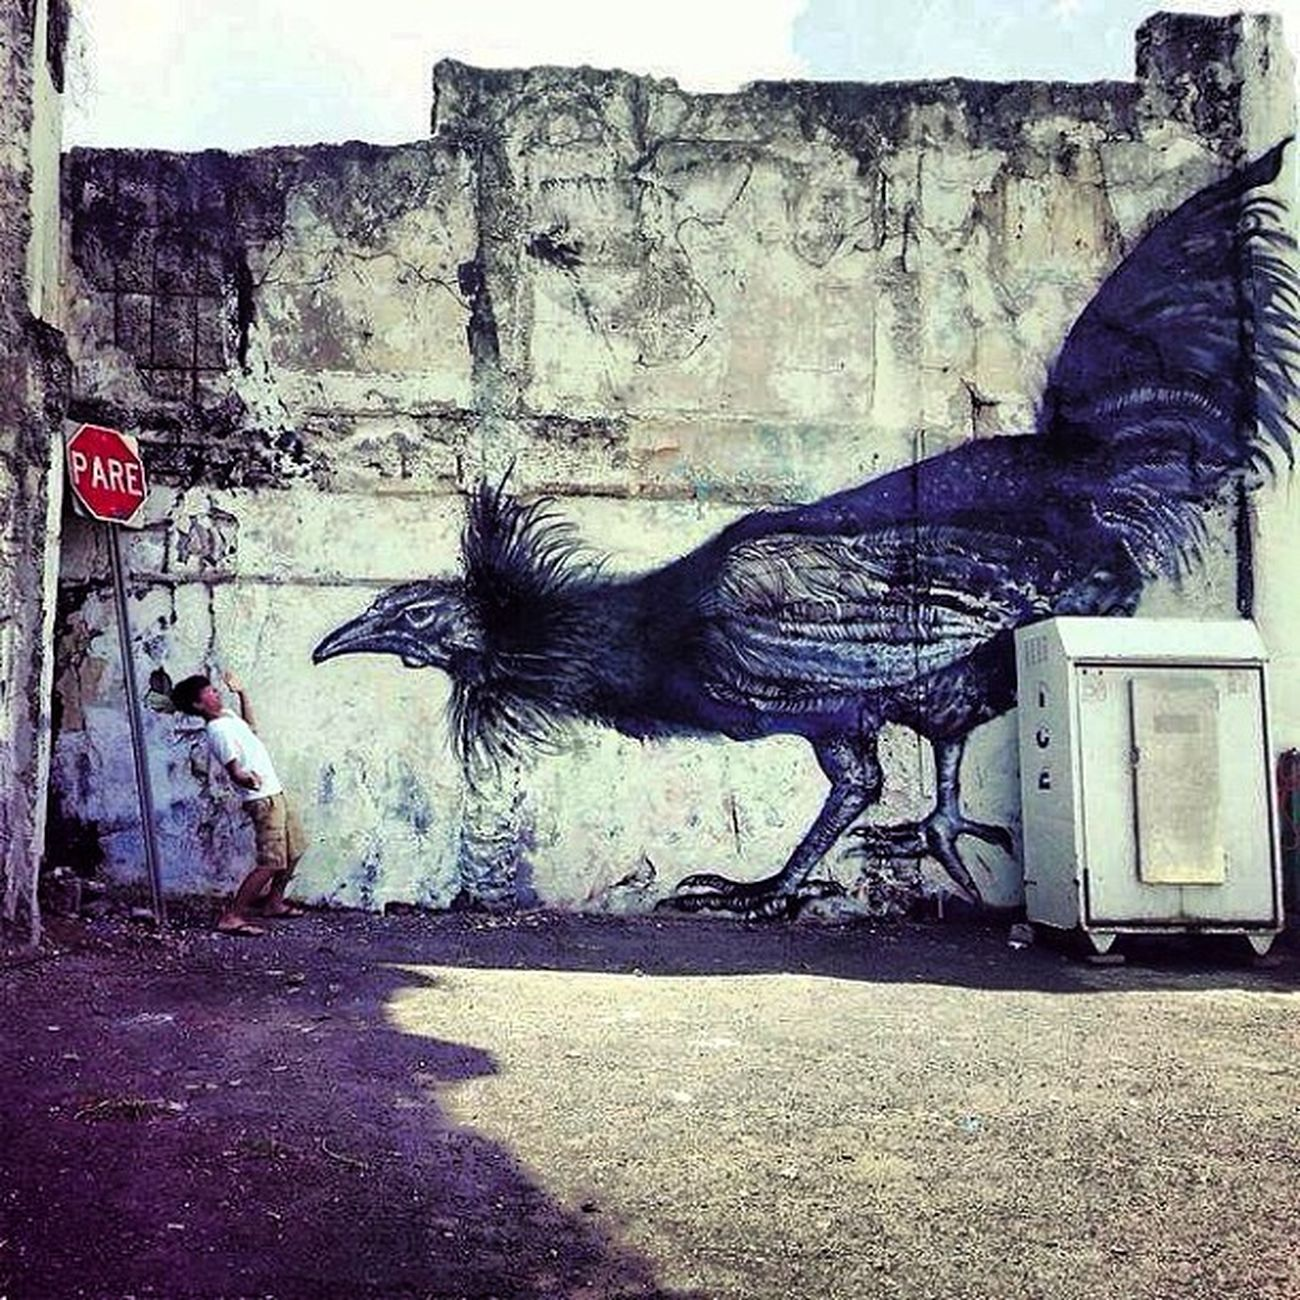 Street Art Streetart Art Gravity Graffiti cool cium instadonesia iphonesia paint